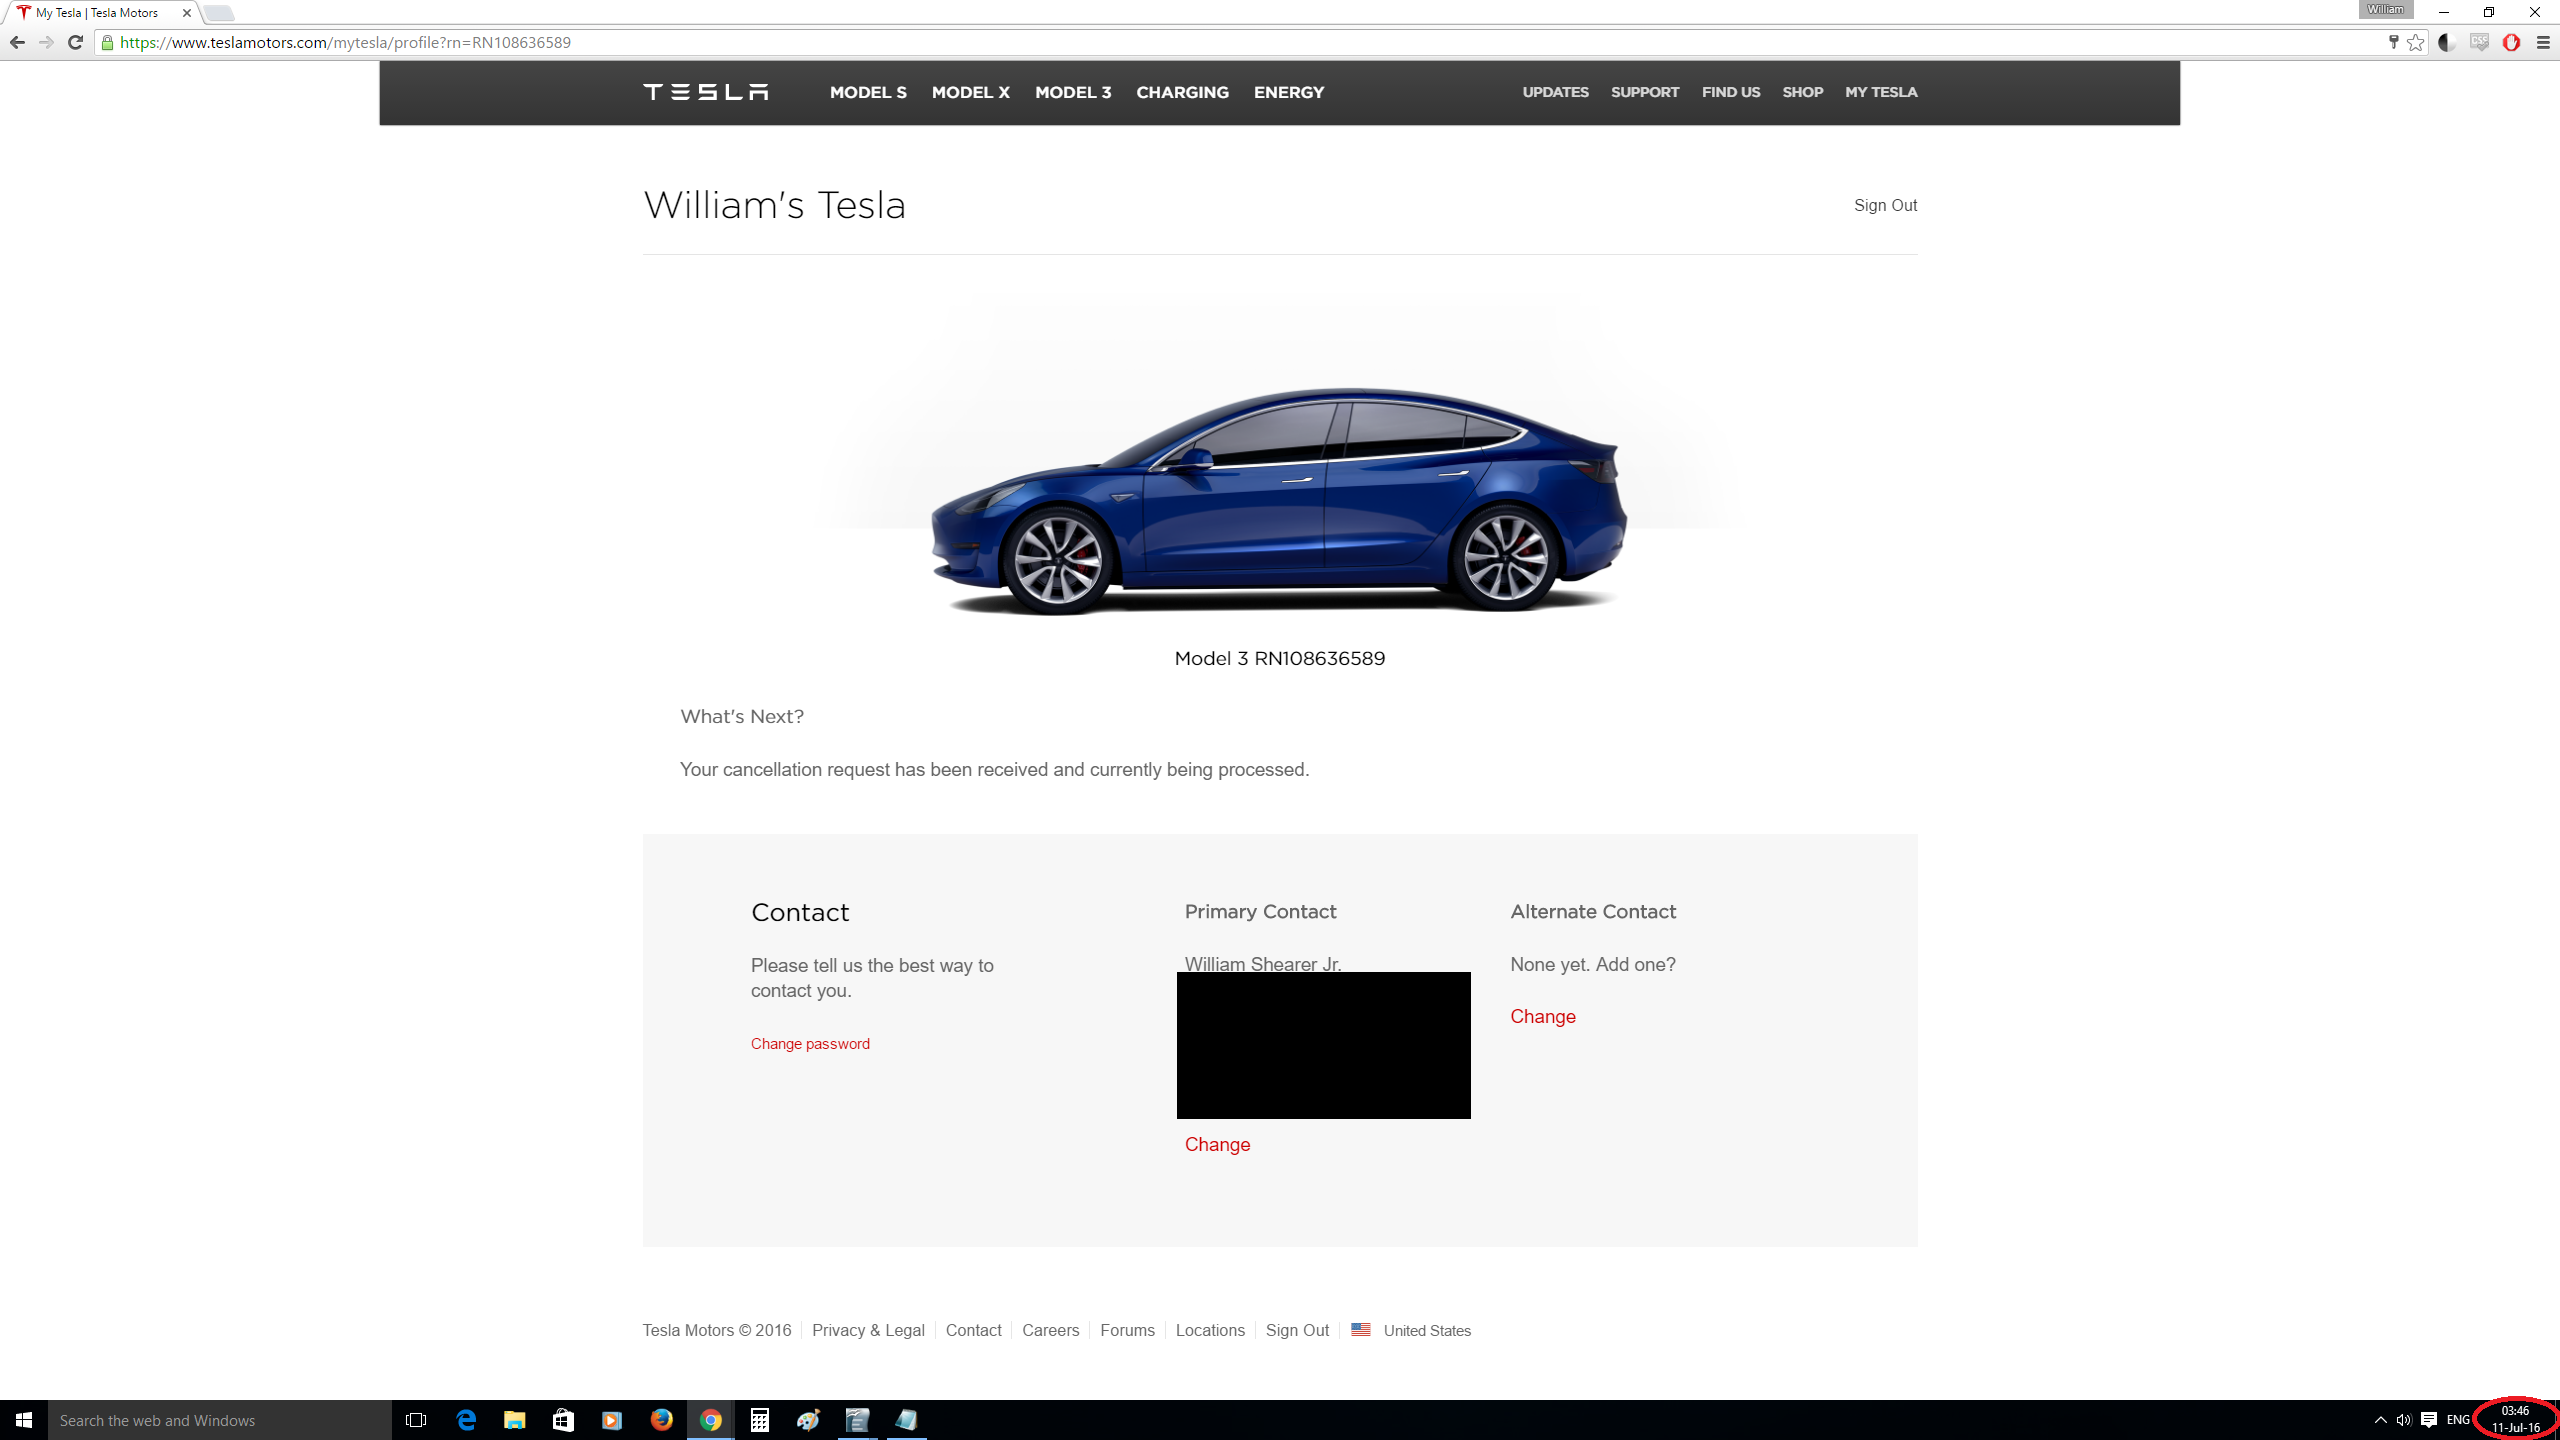 This Sparks A Litany Of Questions Will My Pre Order Still Show As Active On Tesla S Q2 10 Q Filing After All The Cancellation Was Not Completed Before